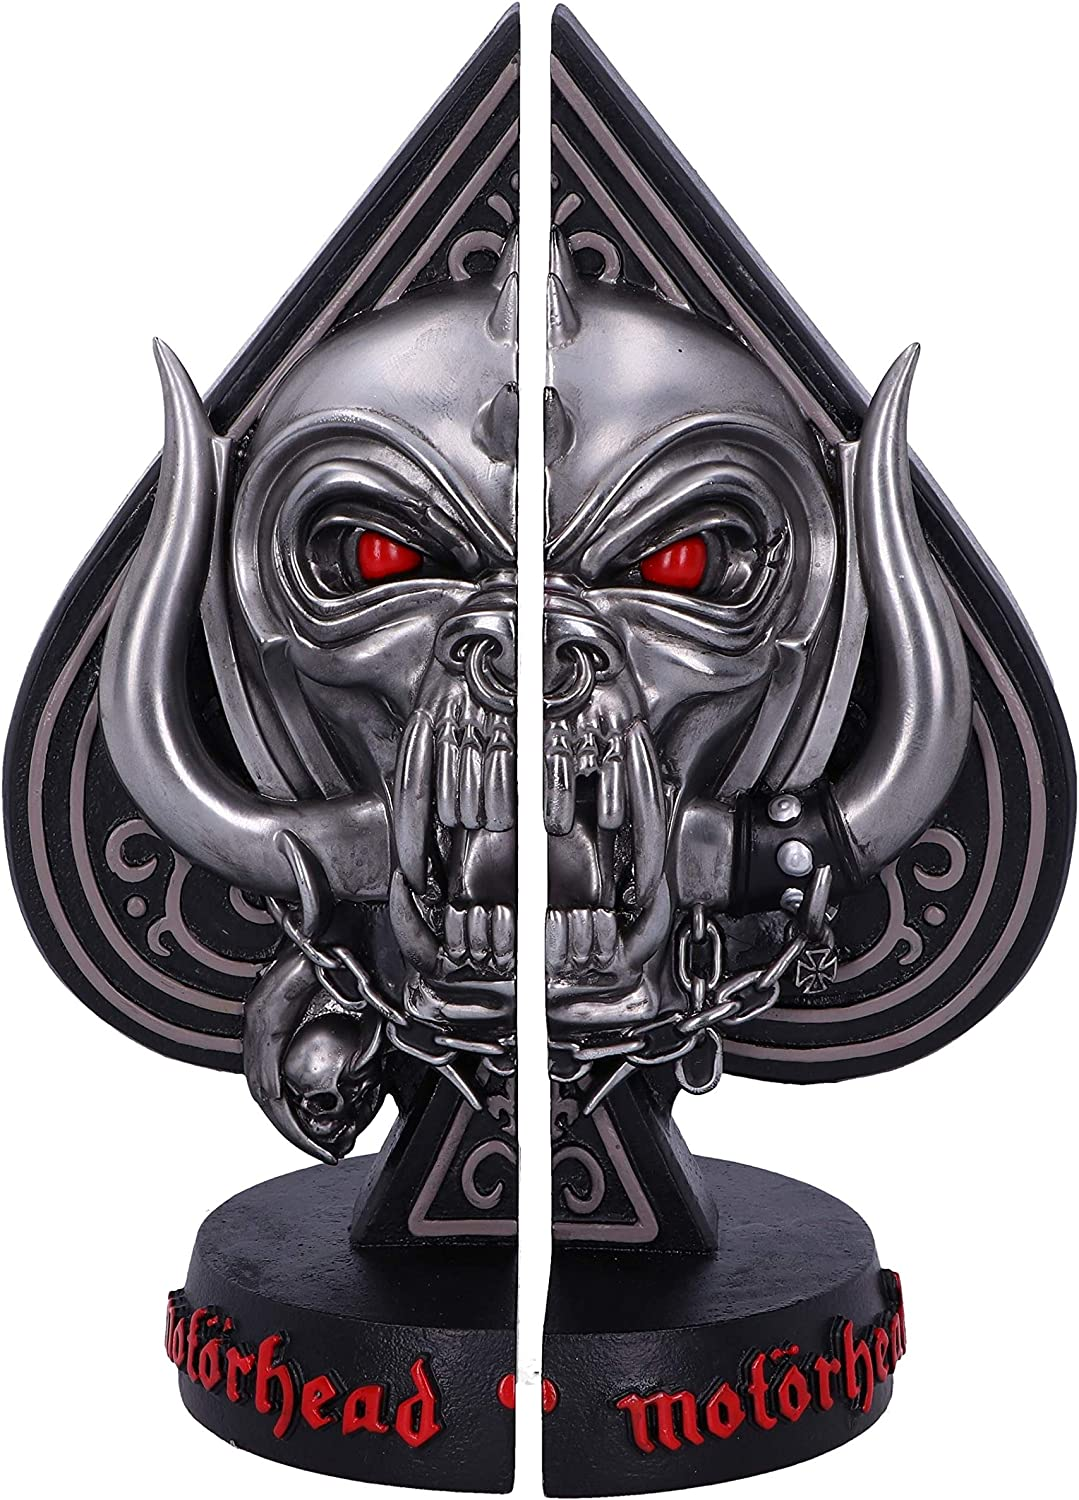 Max 73% OFF Nemesis Now Offically Max 64% OFF Licensed Motorhead Warpig Sn Ace Spades of